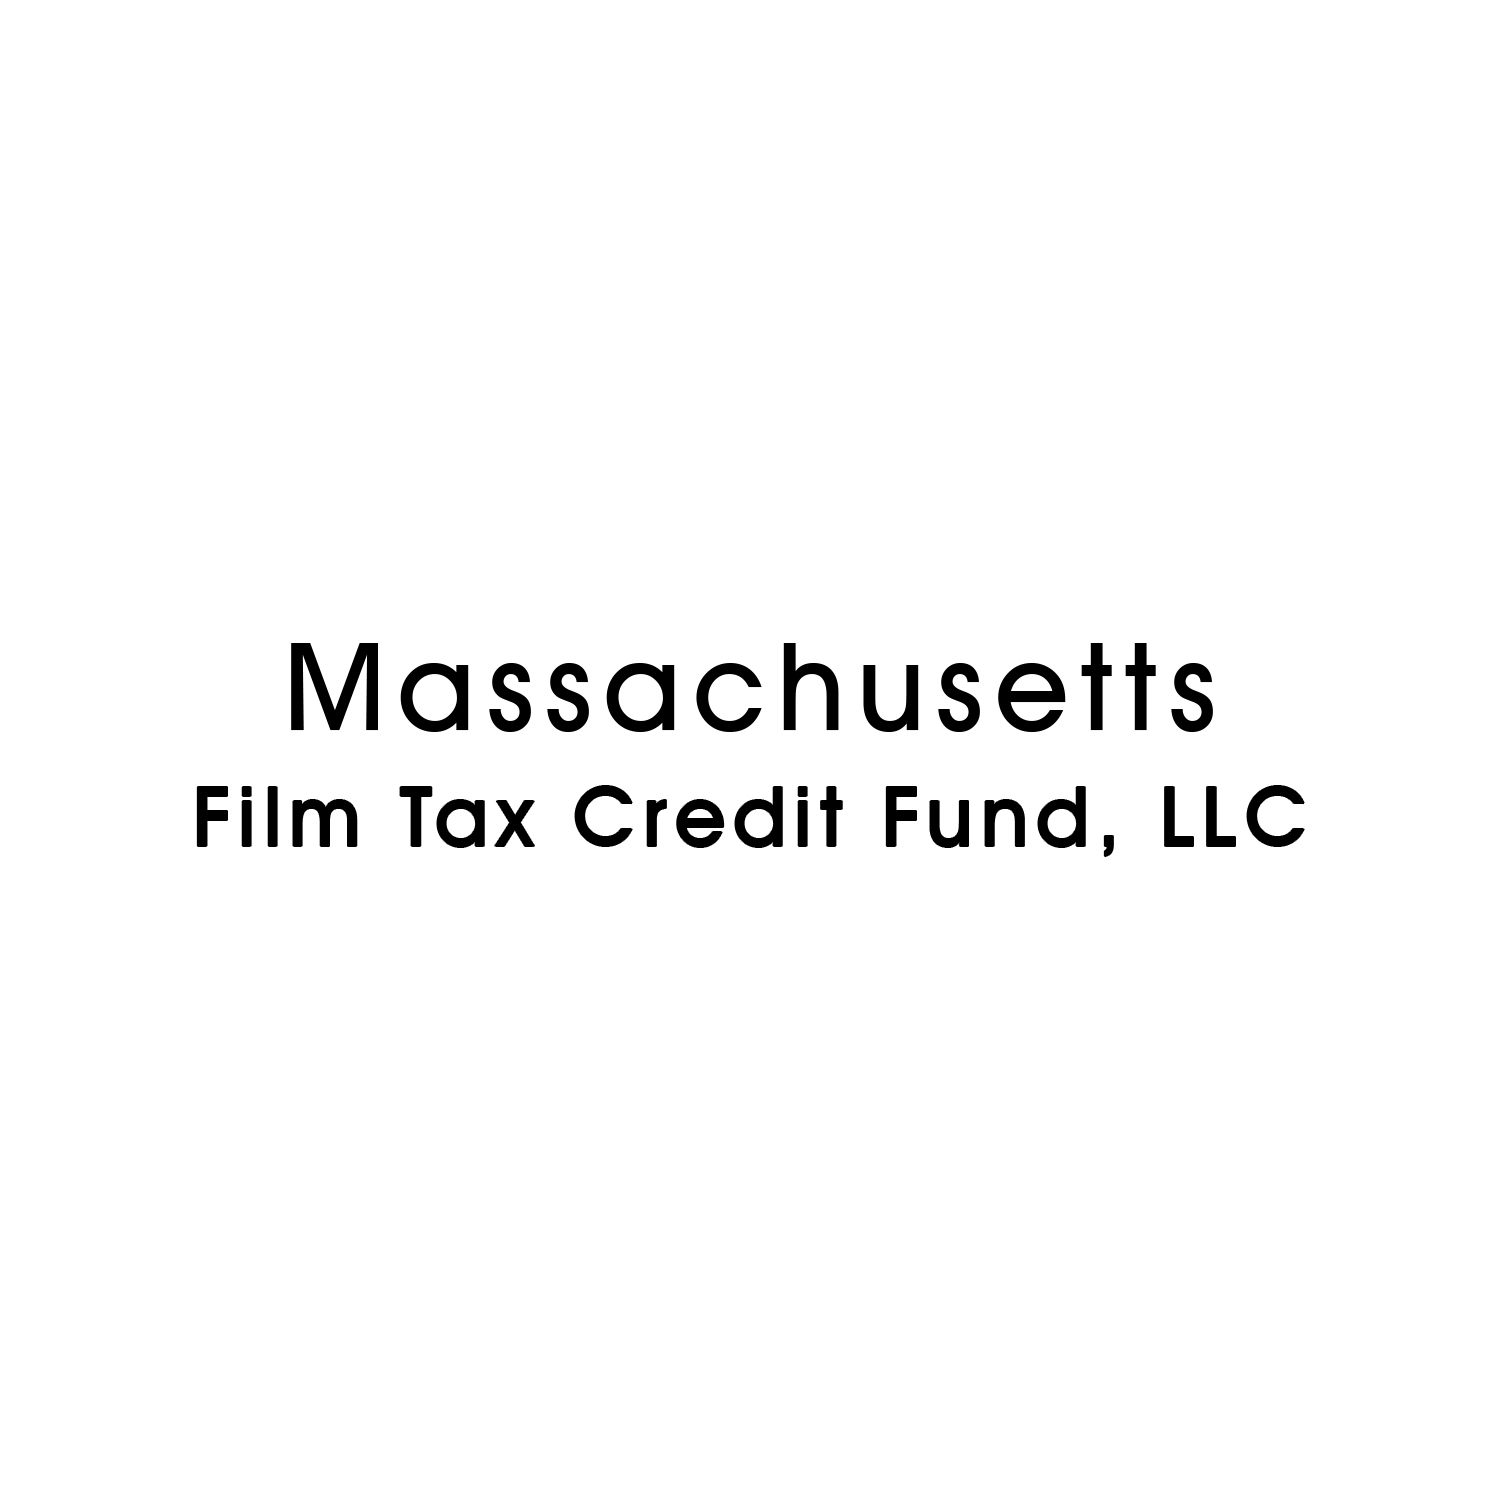 MA Film Tax Credit Fund